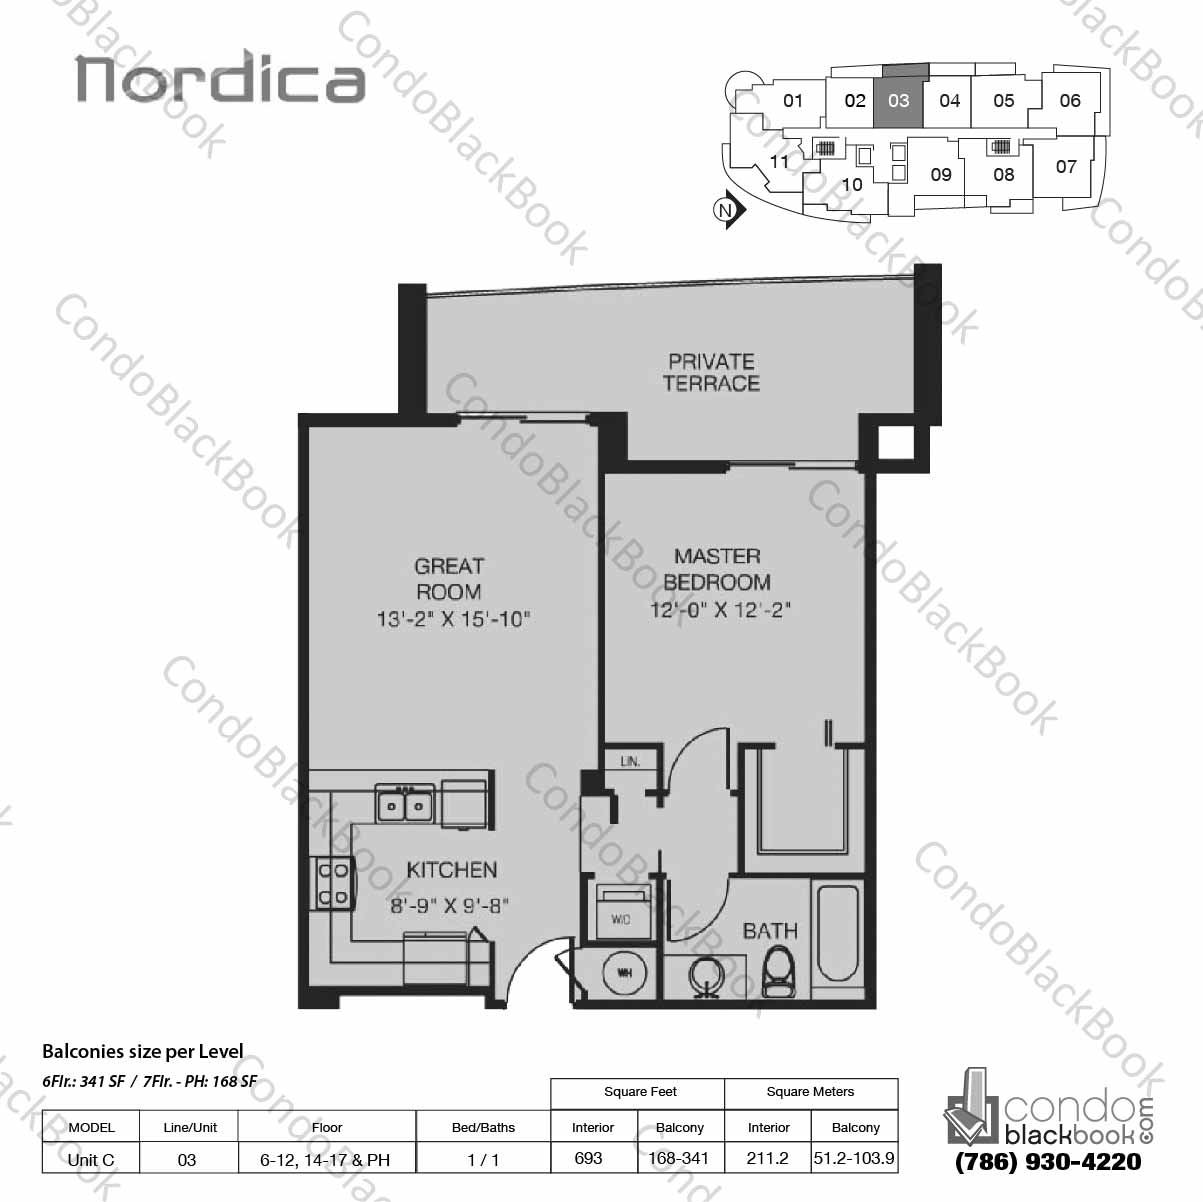 Floor plan for Nordica Coral Way, model Unit C, line 03,  1 / 1 bedrooms, 693 sq ft